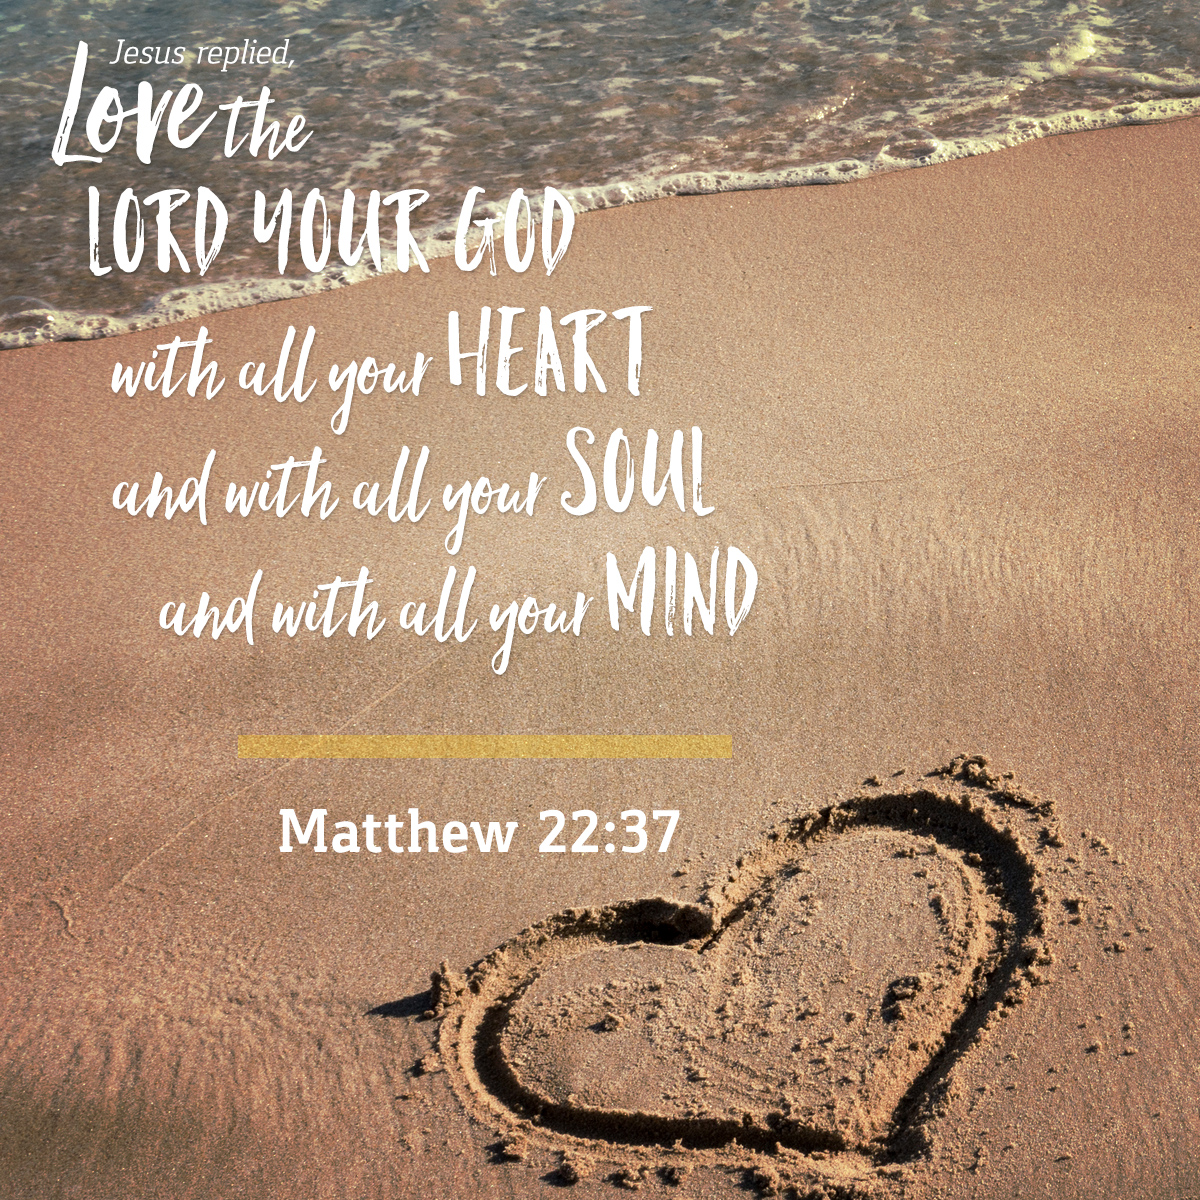 6 Essentials for the Christian Life – Seek and Love God